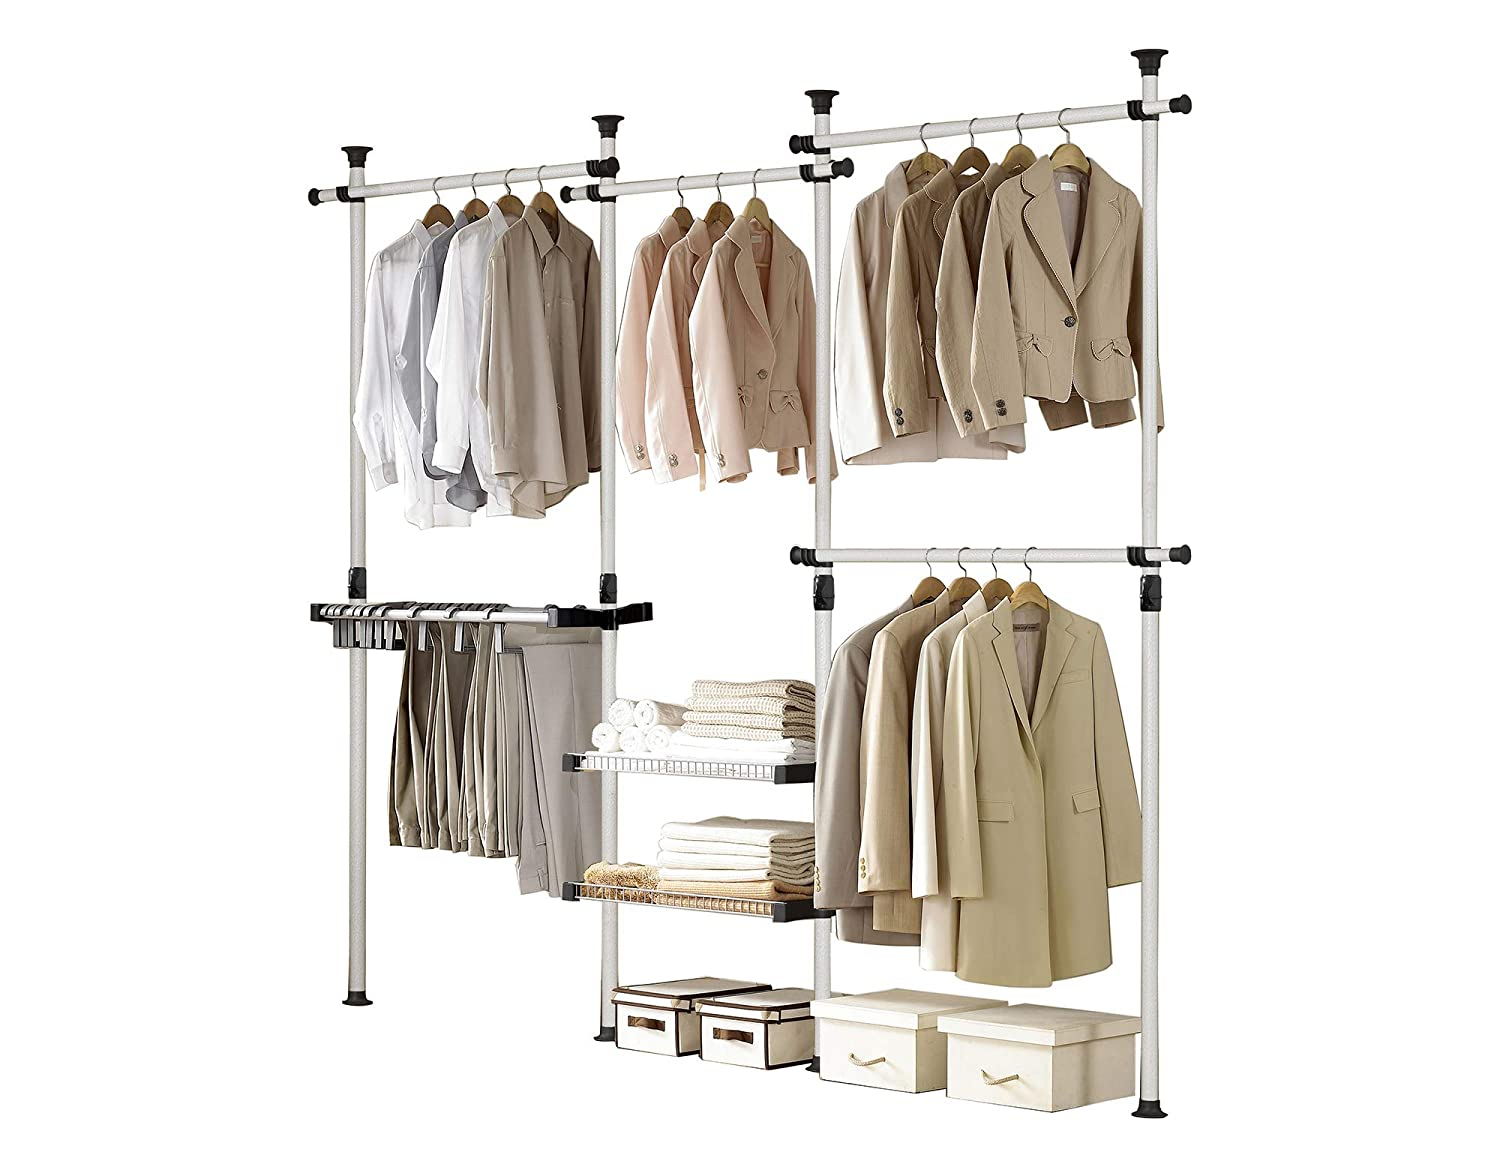 PRINCE HANGER, Deluxe Pants & Shelf Hanger, Holds 60kg(132LB) per horizontal bar, Heavy Duty, 32mm Vertical pole, Clothing Rack, Clothes Organizer, Pants Hanger, PHUS-0052